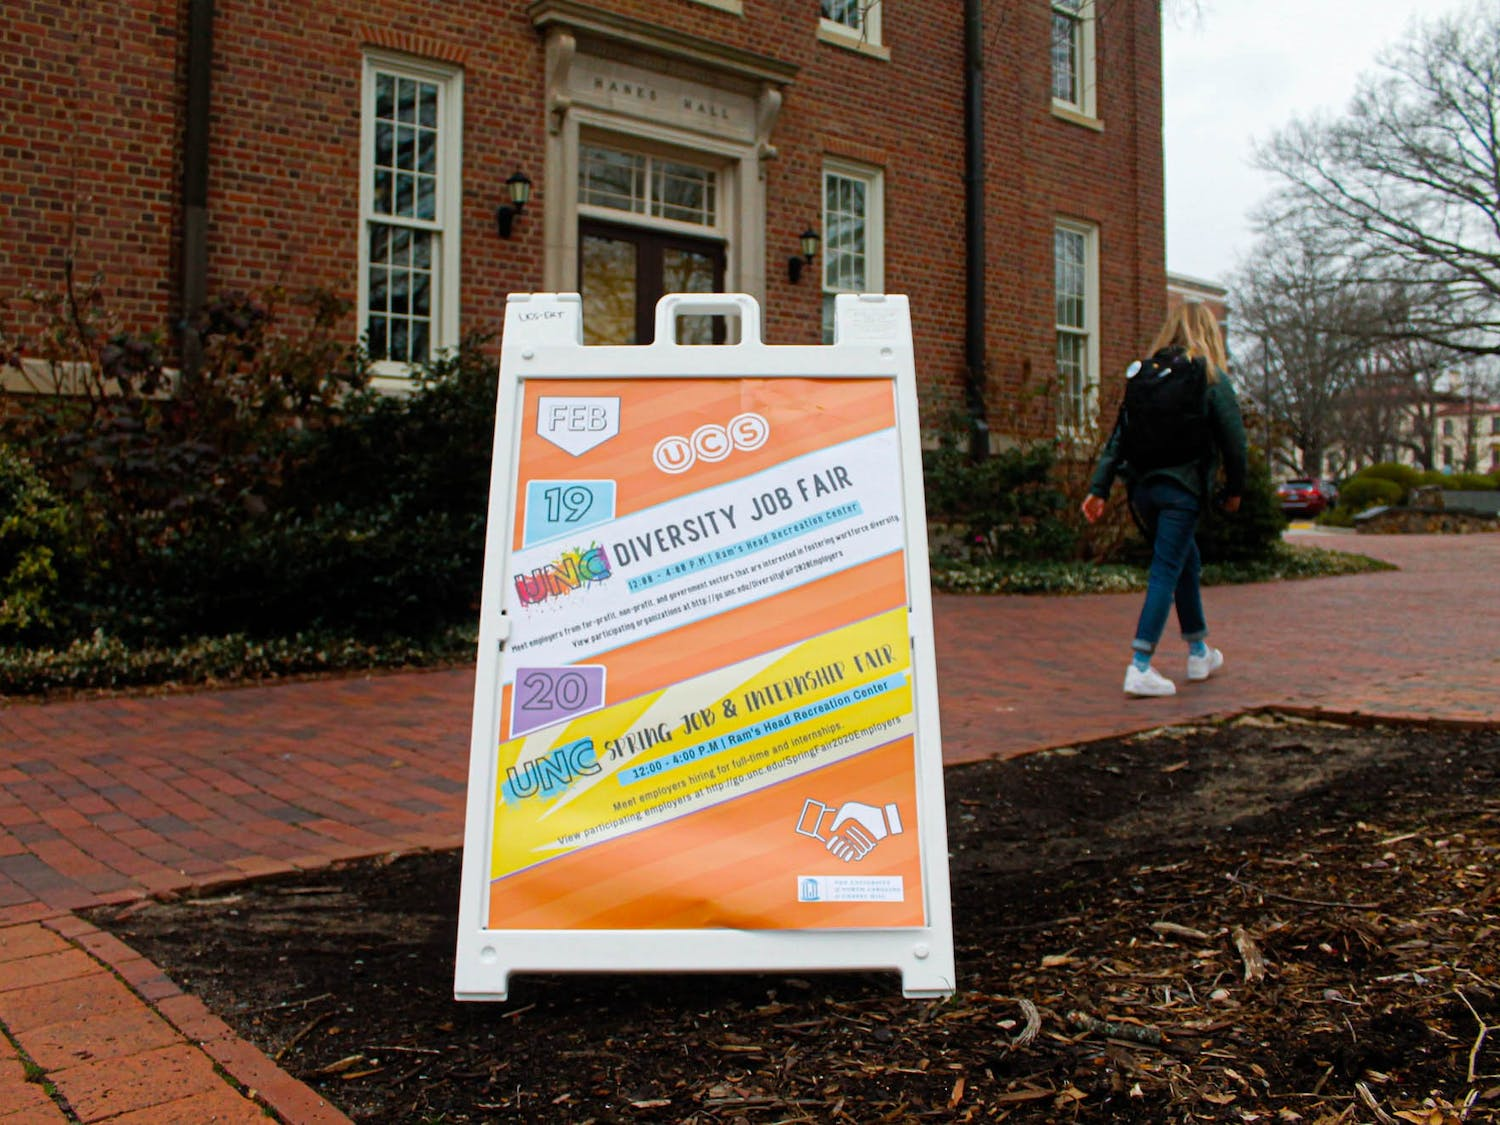 A UNC student walks past an advertisement outside Hanes Hall for the Diversity Job Fair on Wednesday, Feb. 19, 2020. The fair hosts students and employers who are interested in careers that promote diversity. The fair will take place on Wednesday, Feb. 19 from 12 to 4 p.m. at Ram's Head Recreation Center.